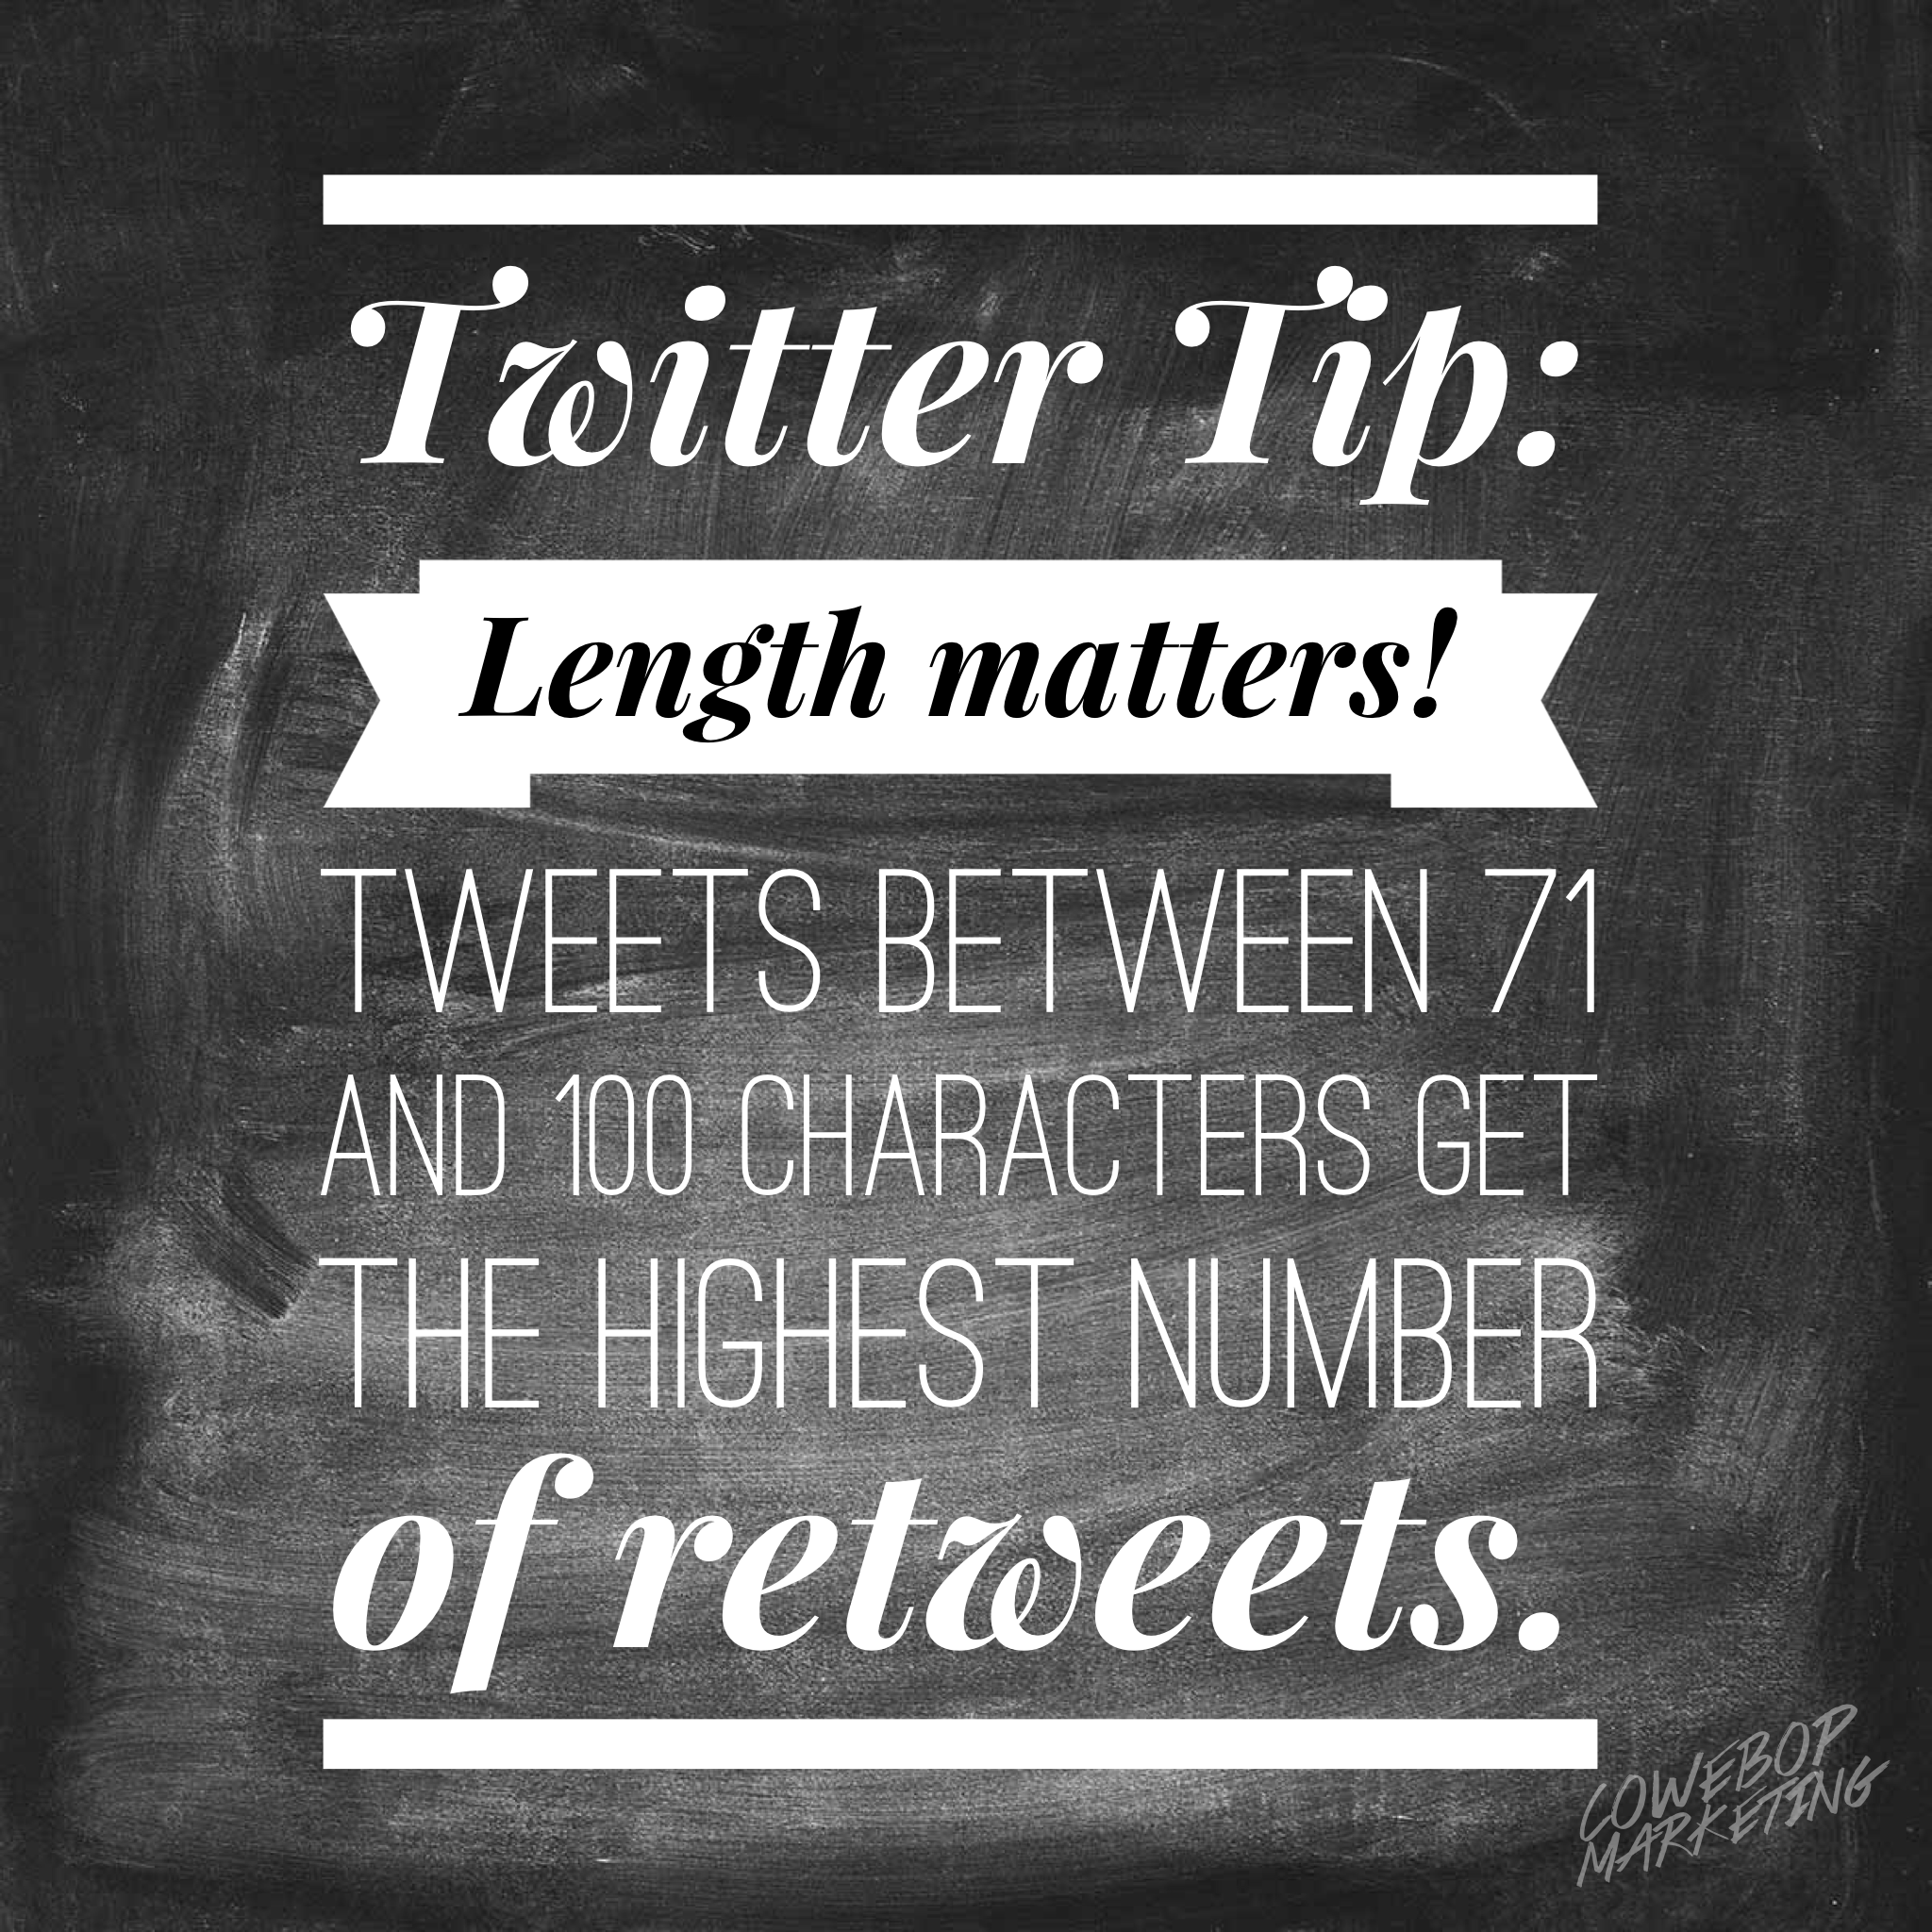 Twitter Infographic Tips